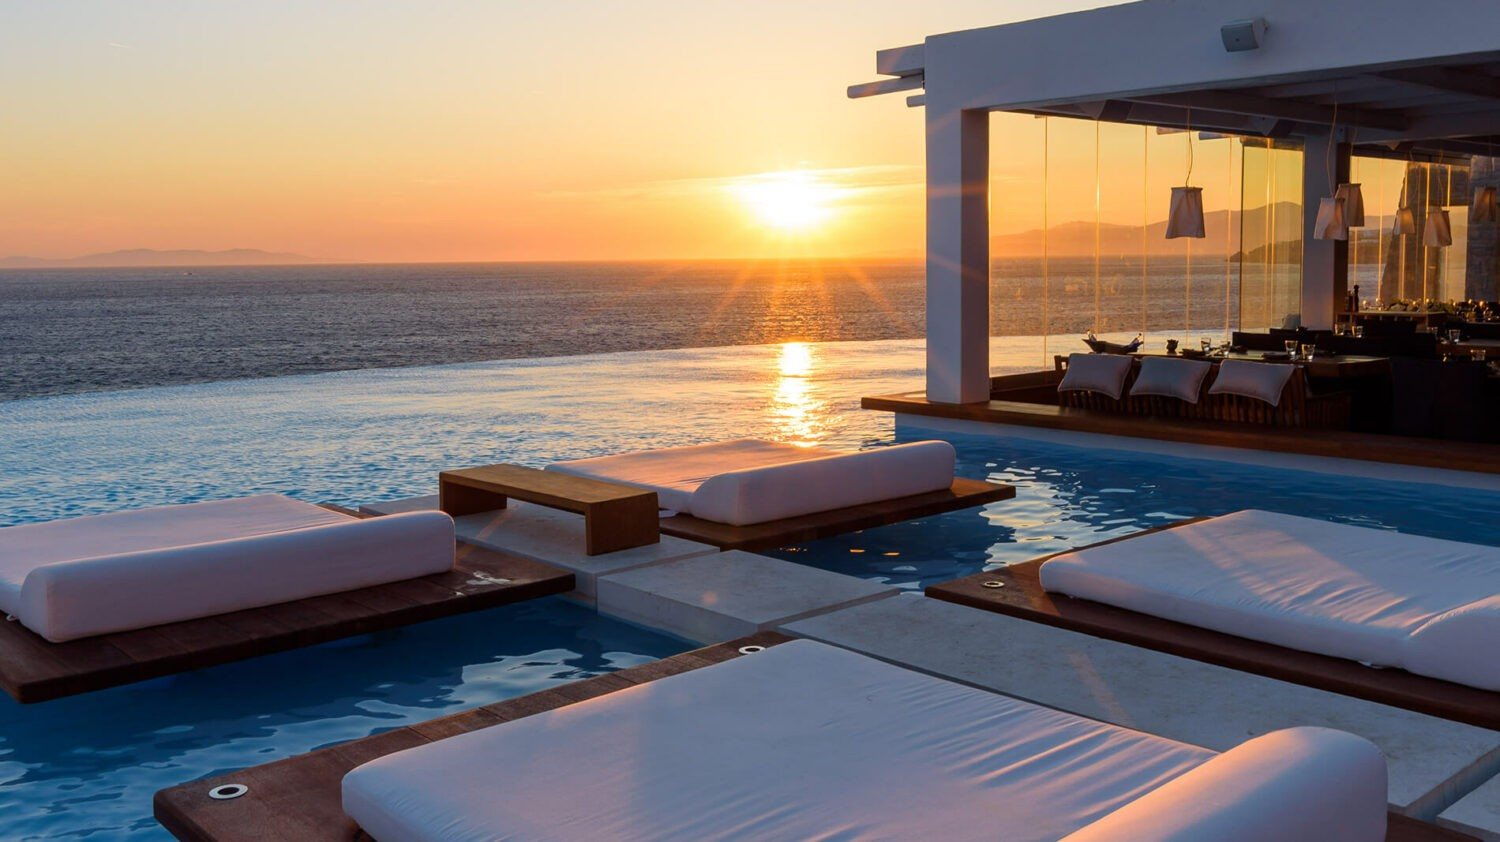 cavo-tagoo-mykonos-pool-sunset